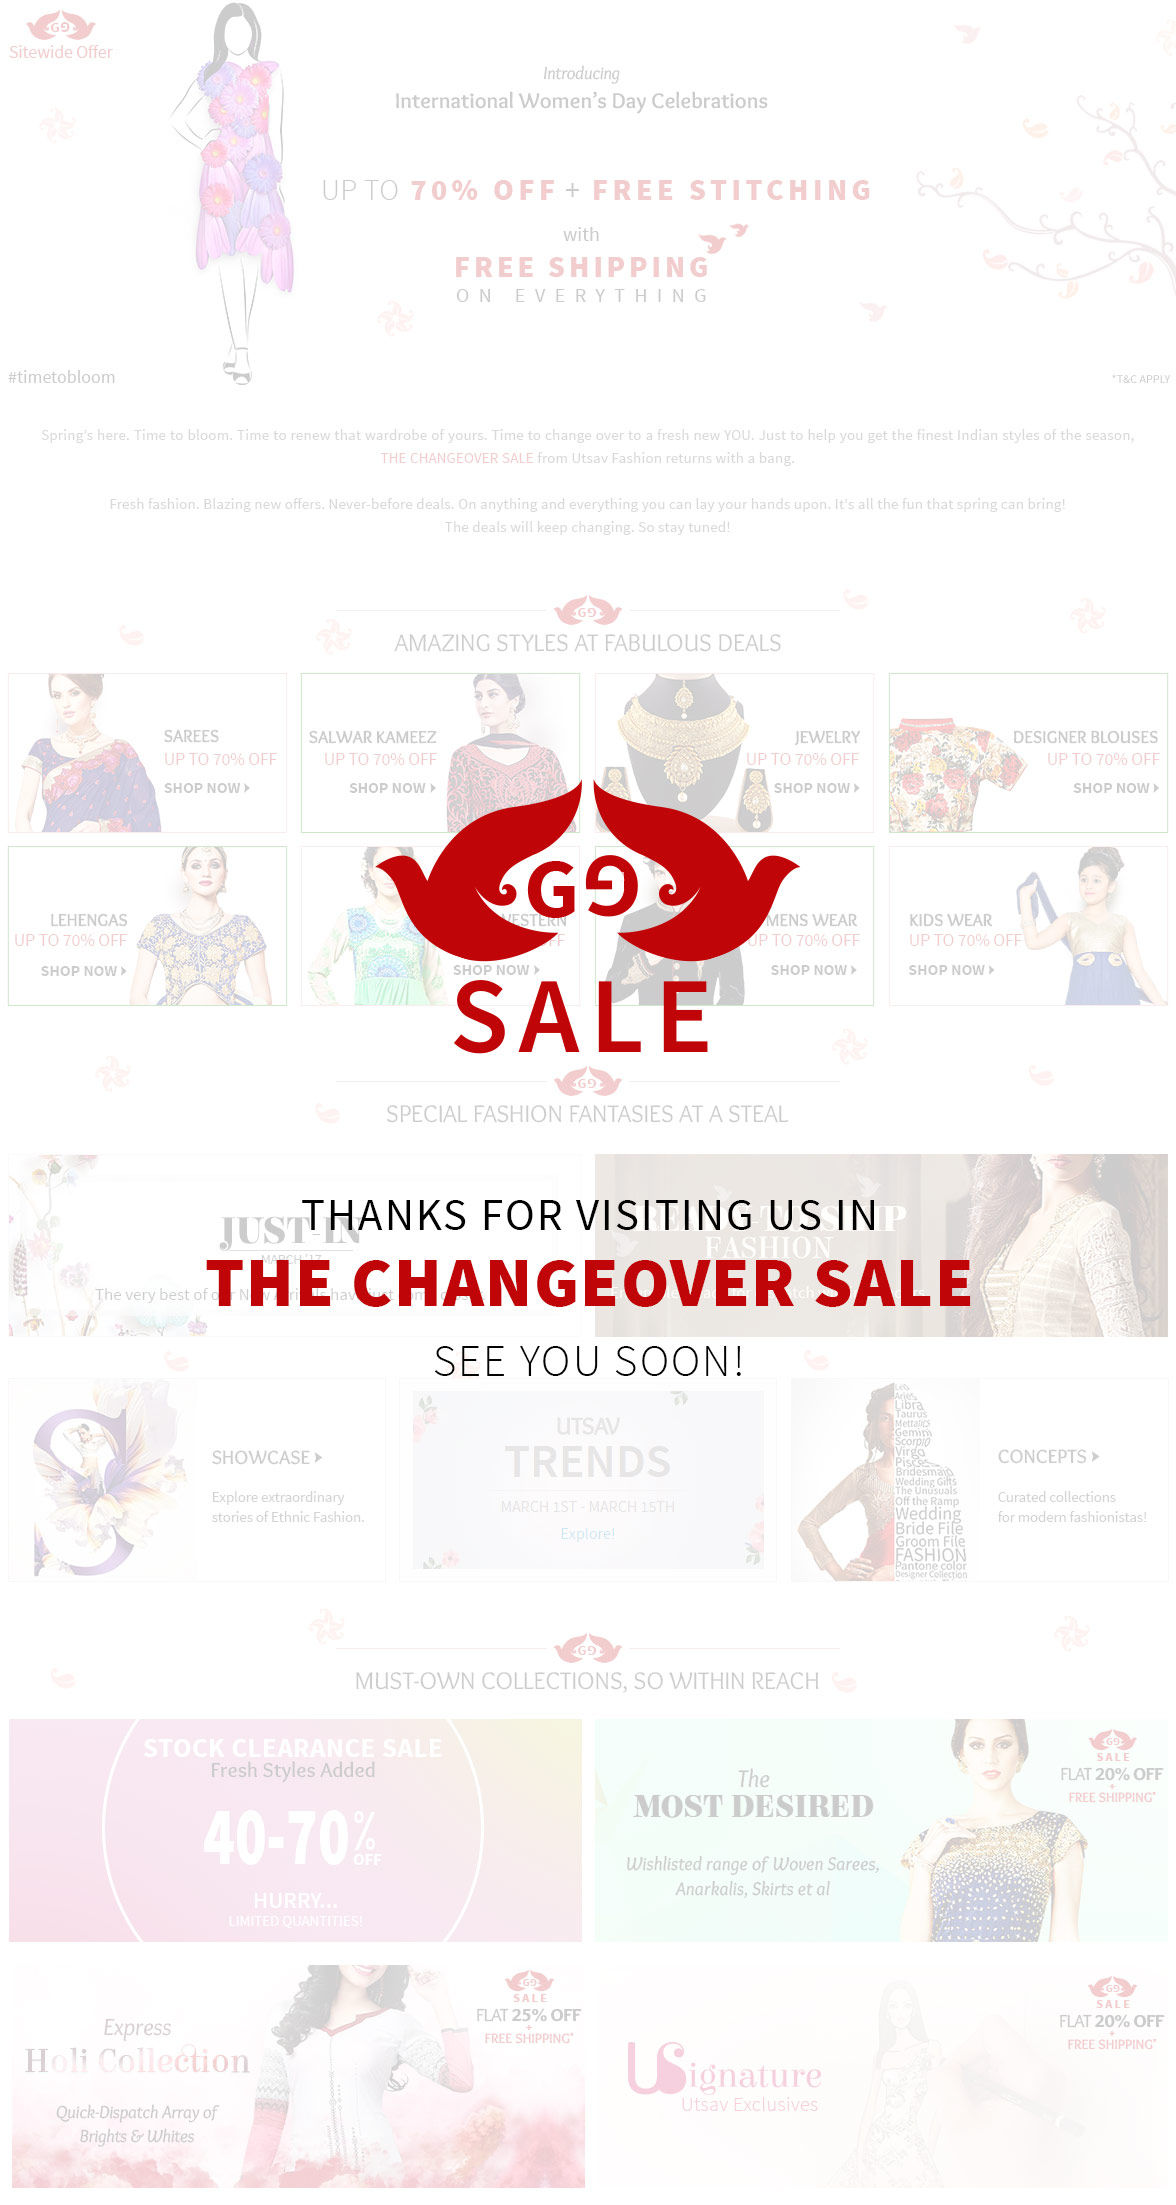 Changeover Sale: Upto 70% Off Sitewide plus Free Stitching & Free Shipping. Hurry!